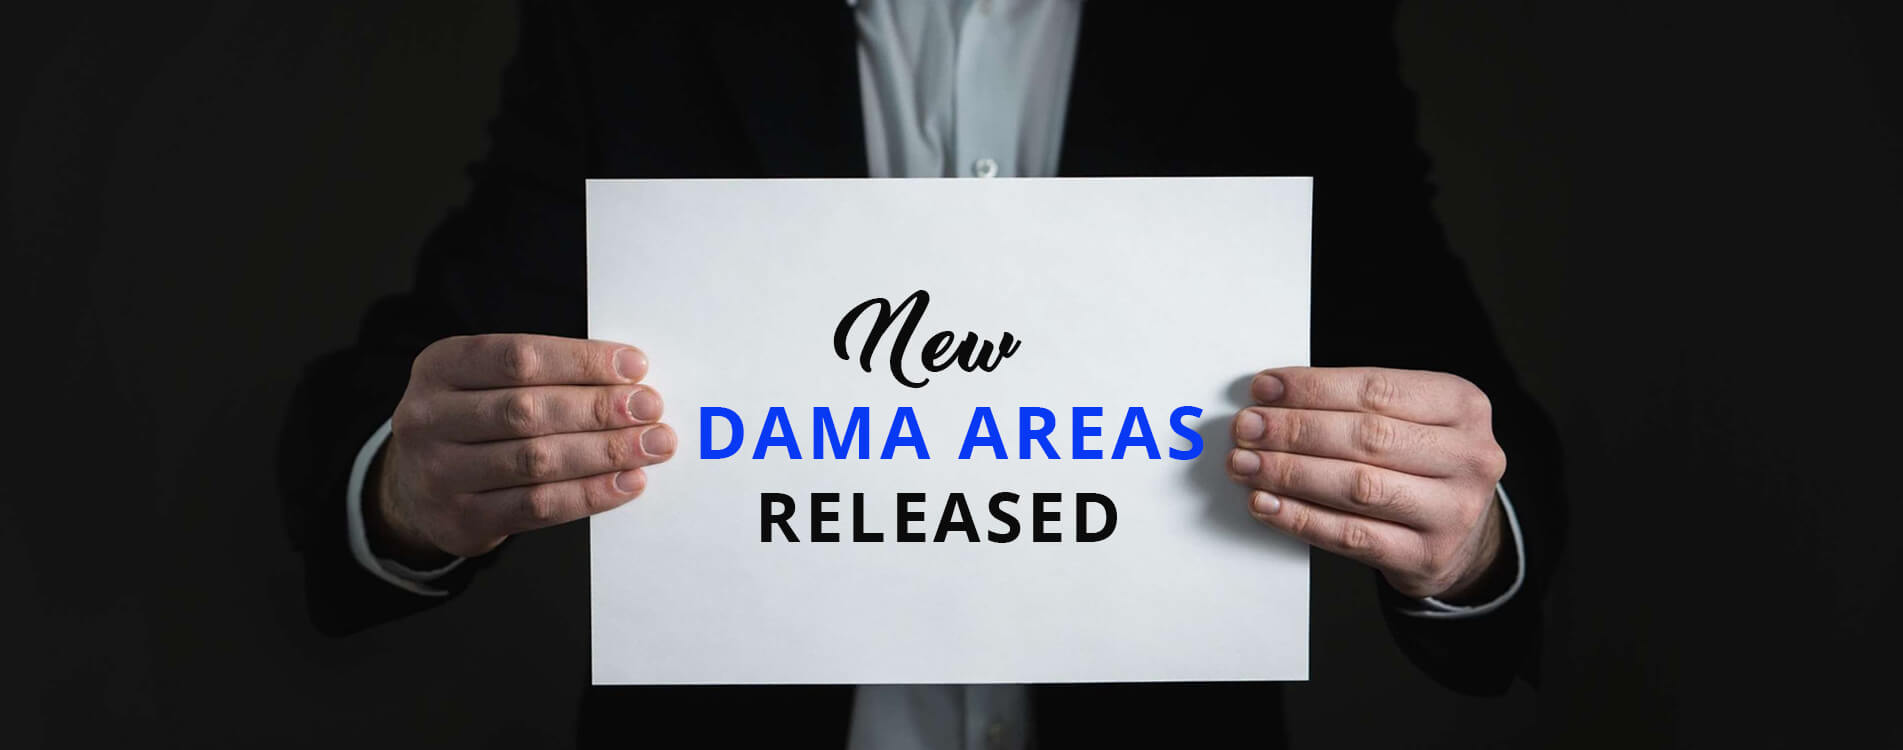 New DAMA Areas Released